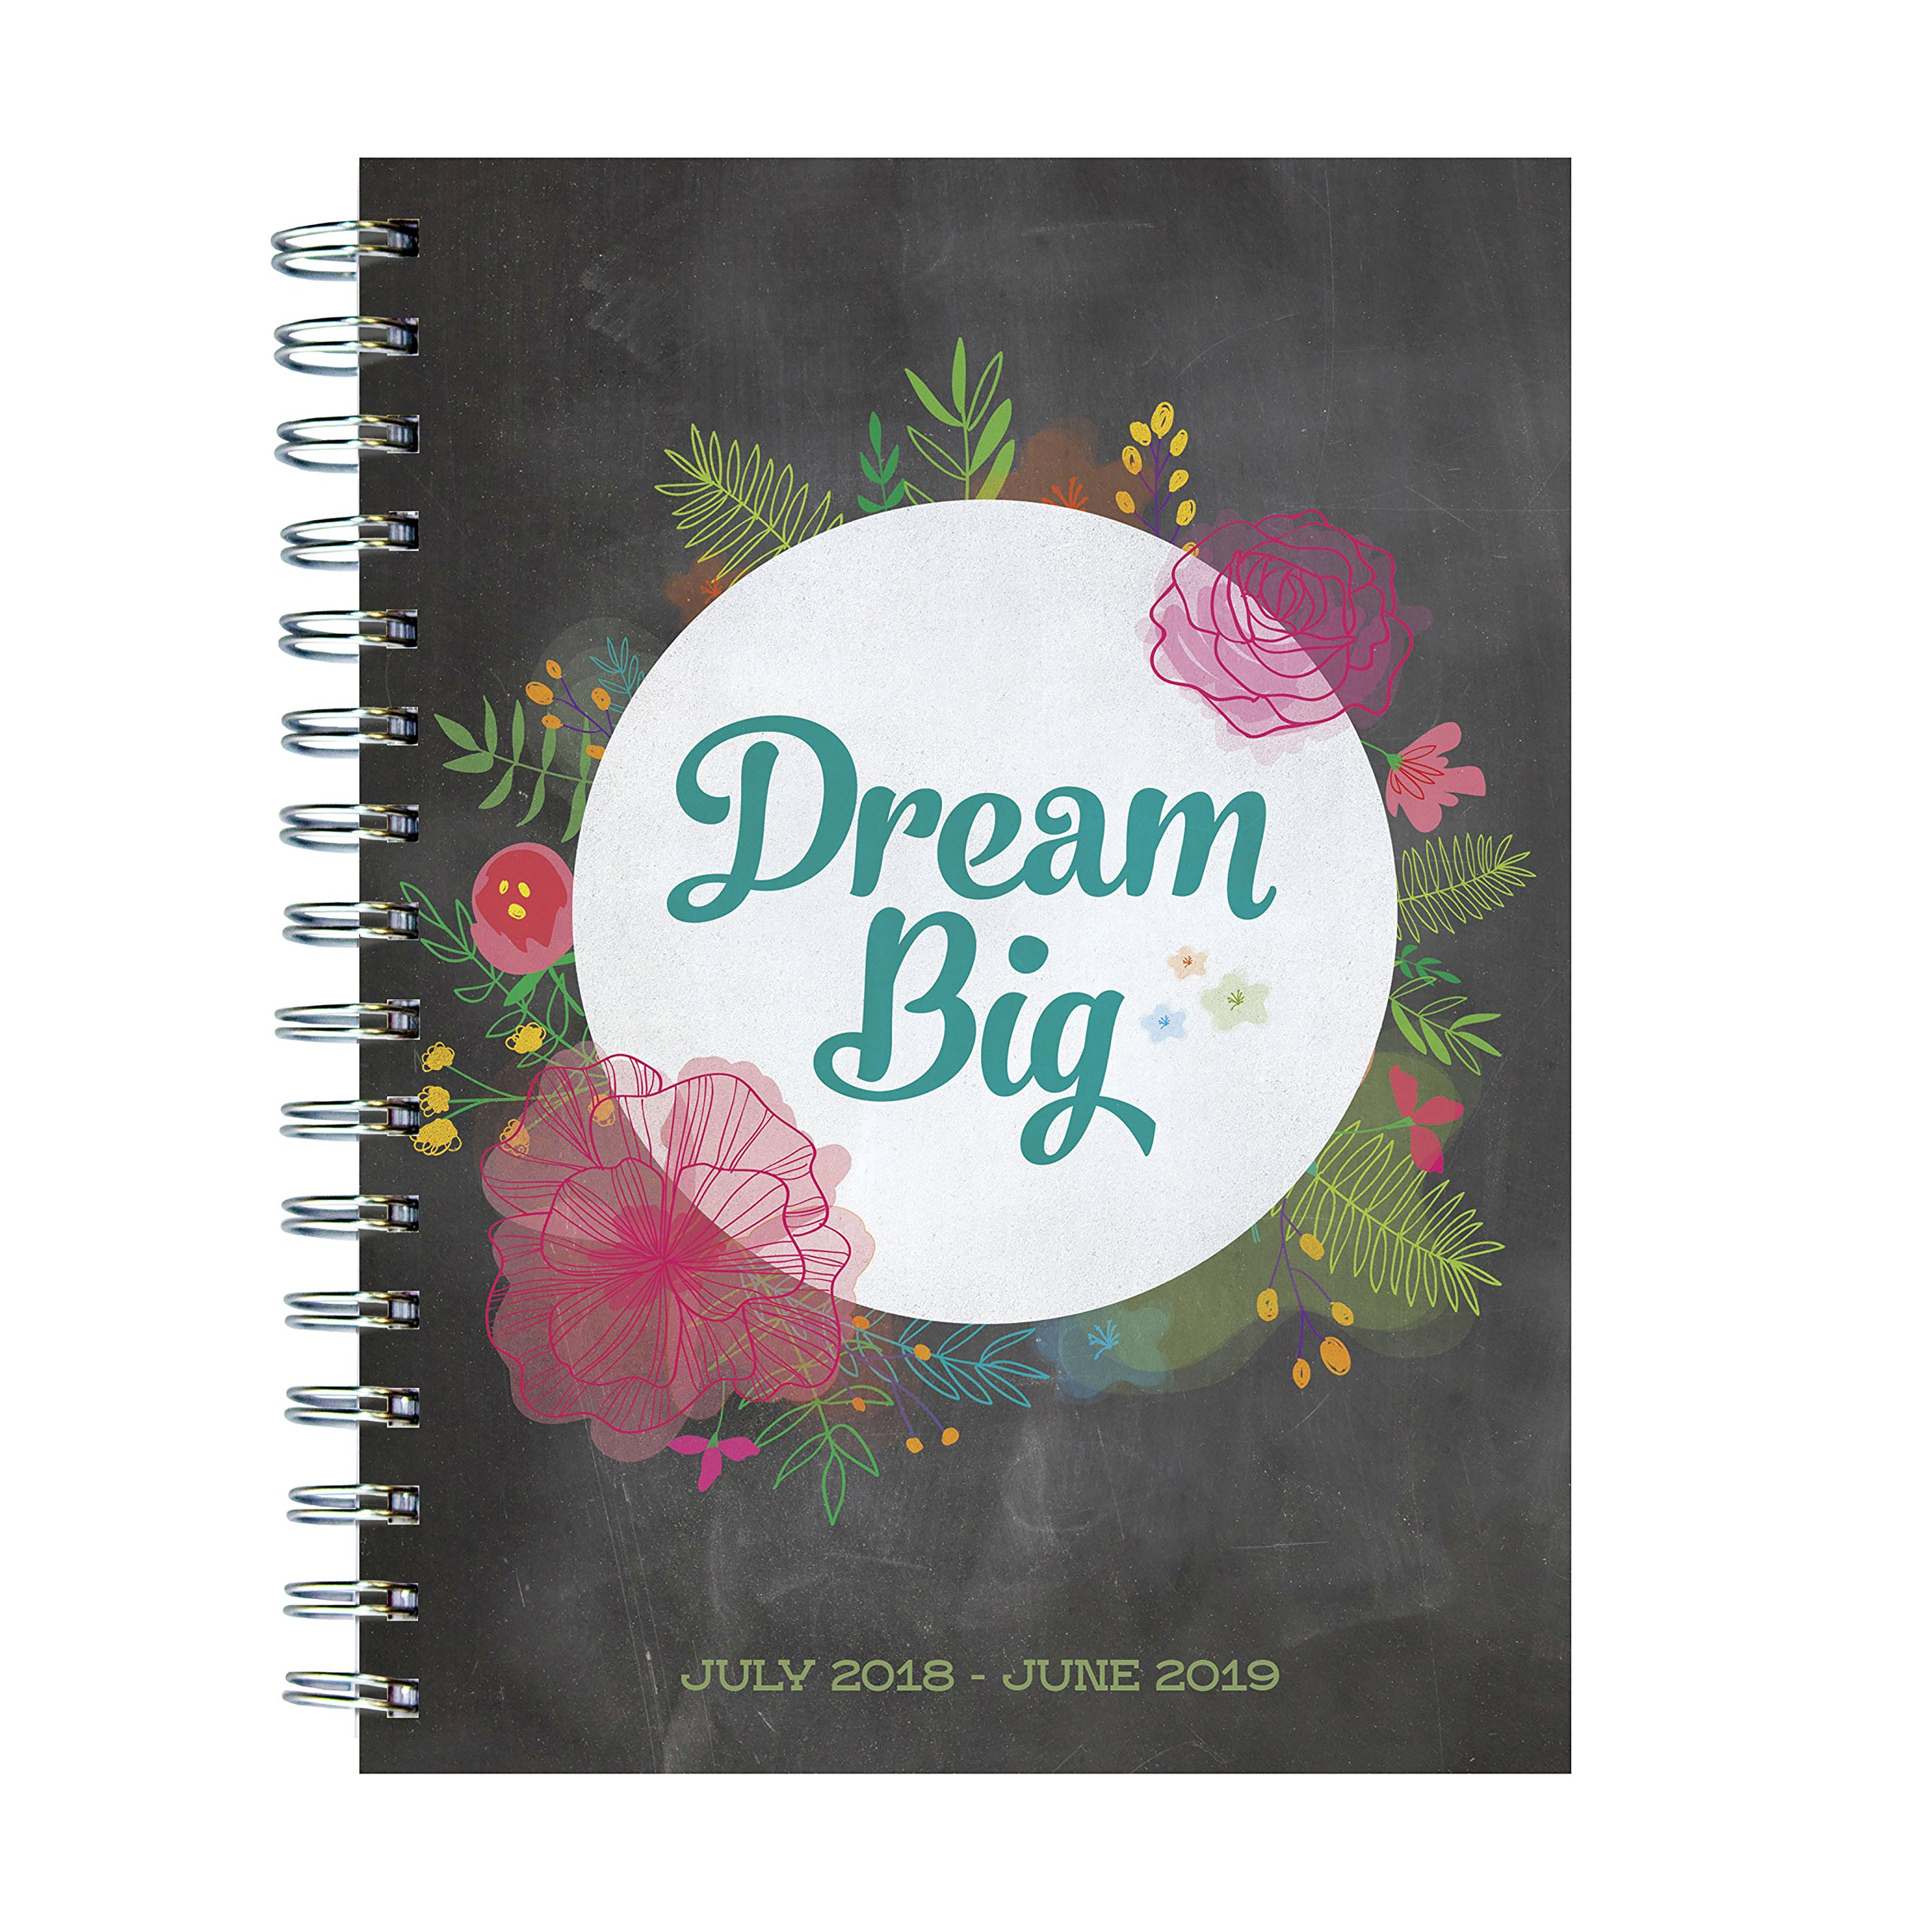 TF Publishing 19-9243A July 2018 - June 2019 Dream Big Medium Weekly Monthly Planner, 6.5 x 8'', Black & White